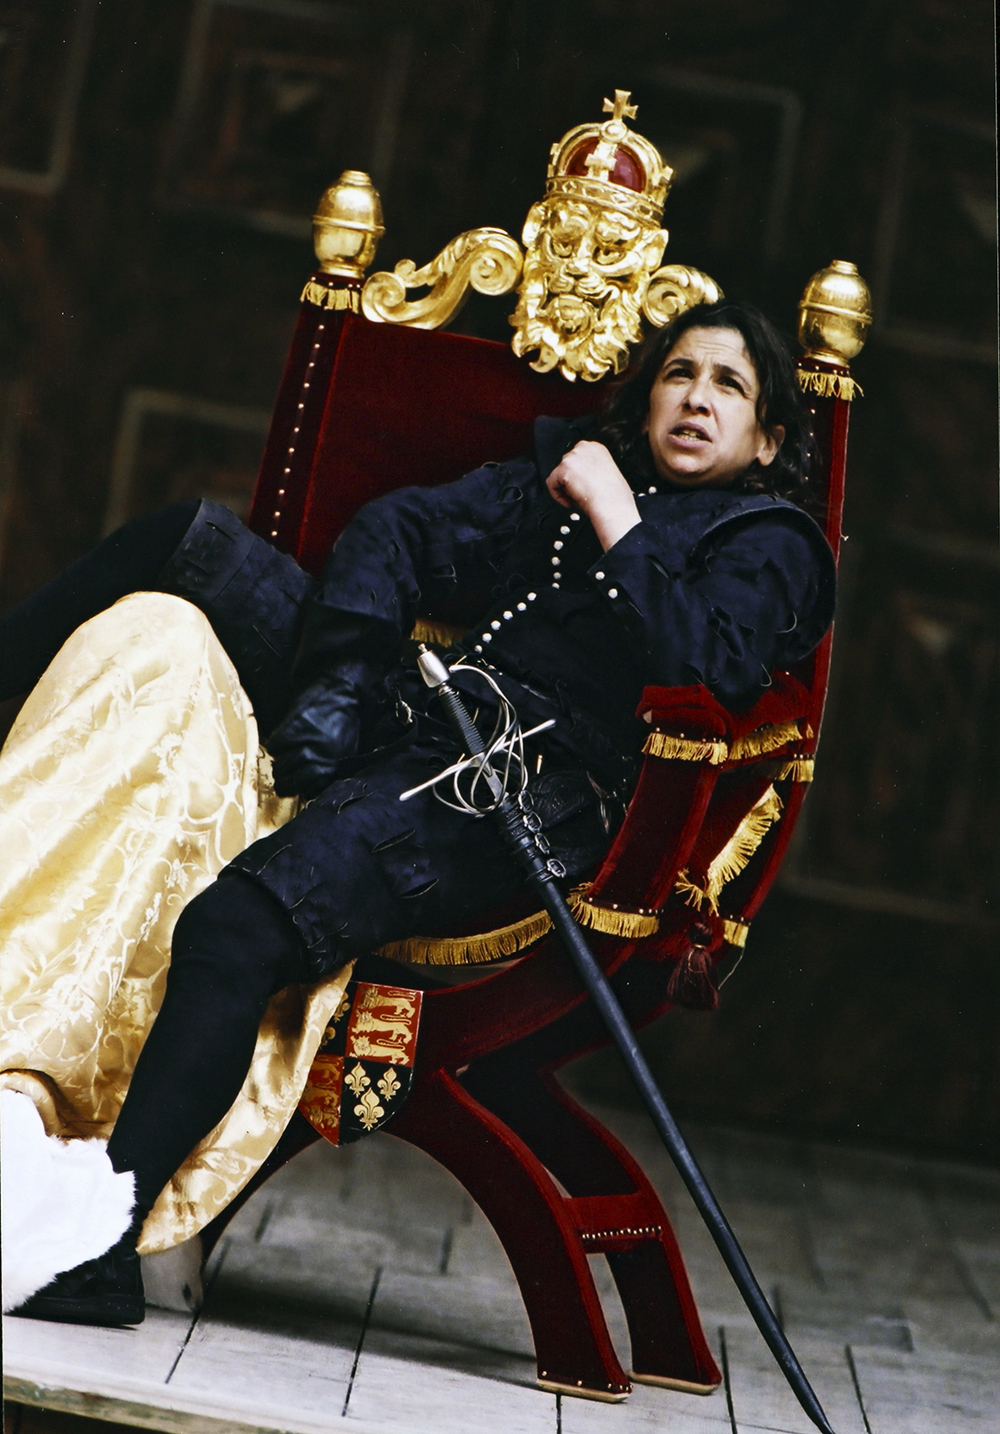 Actor sitting powerfully in a thrown